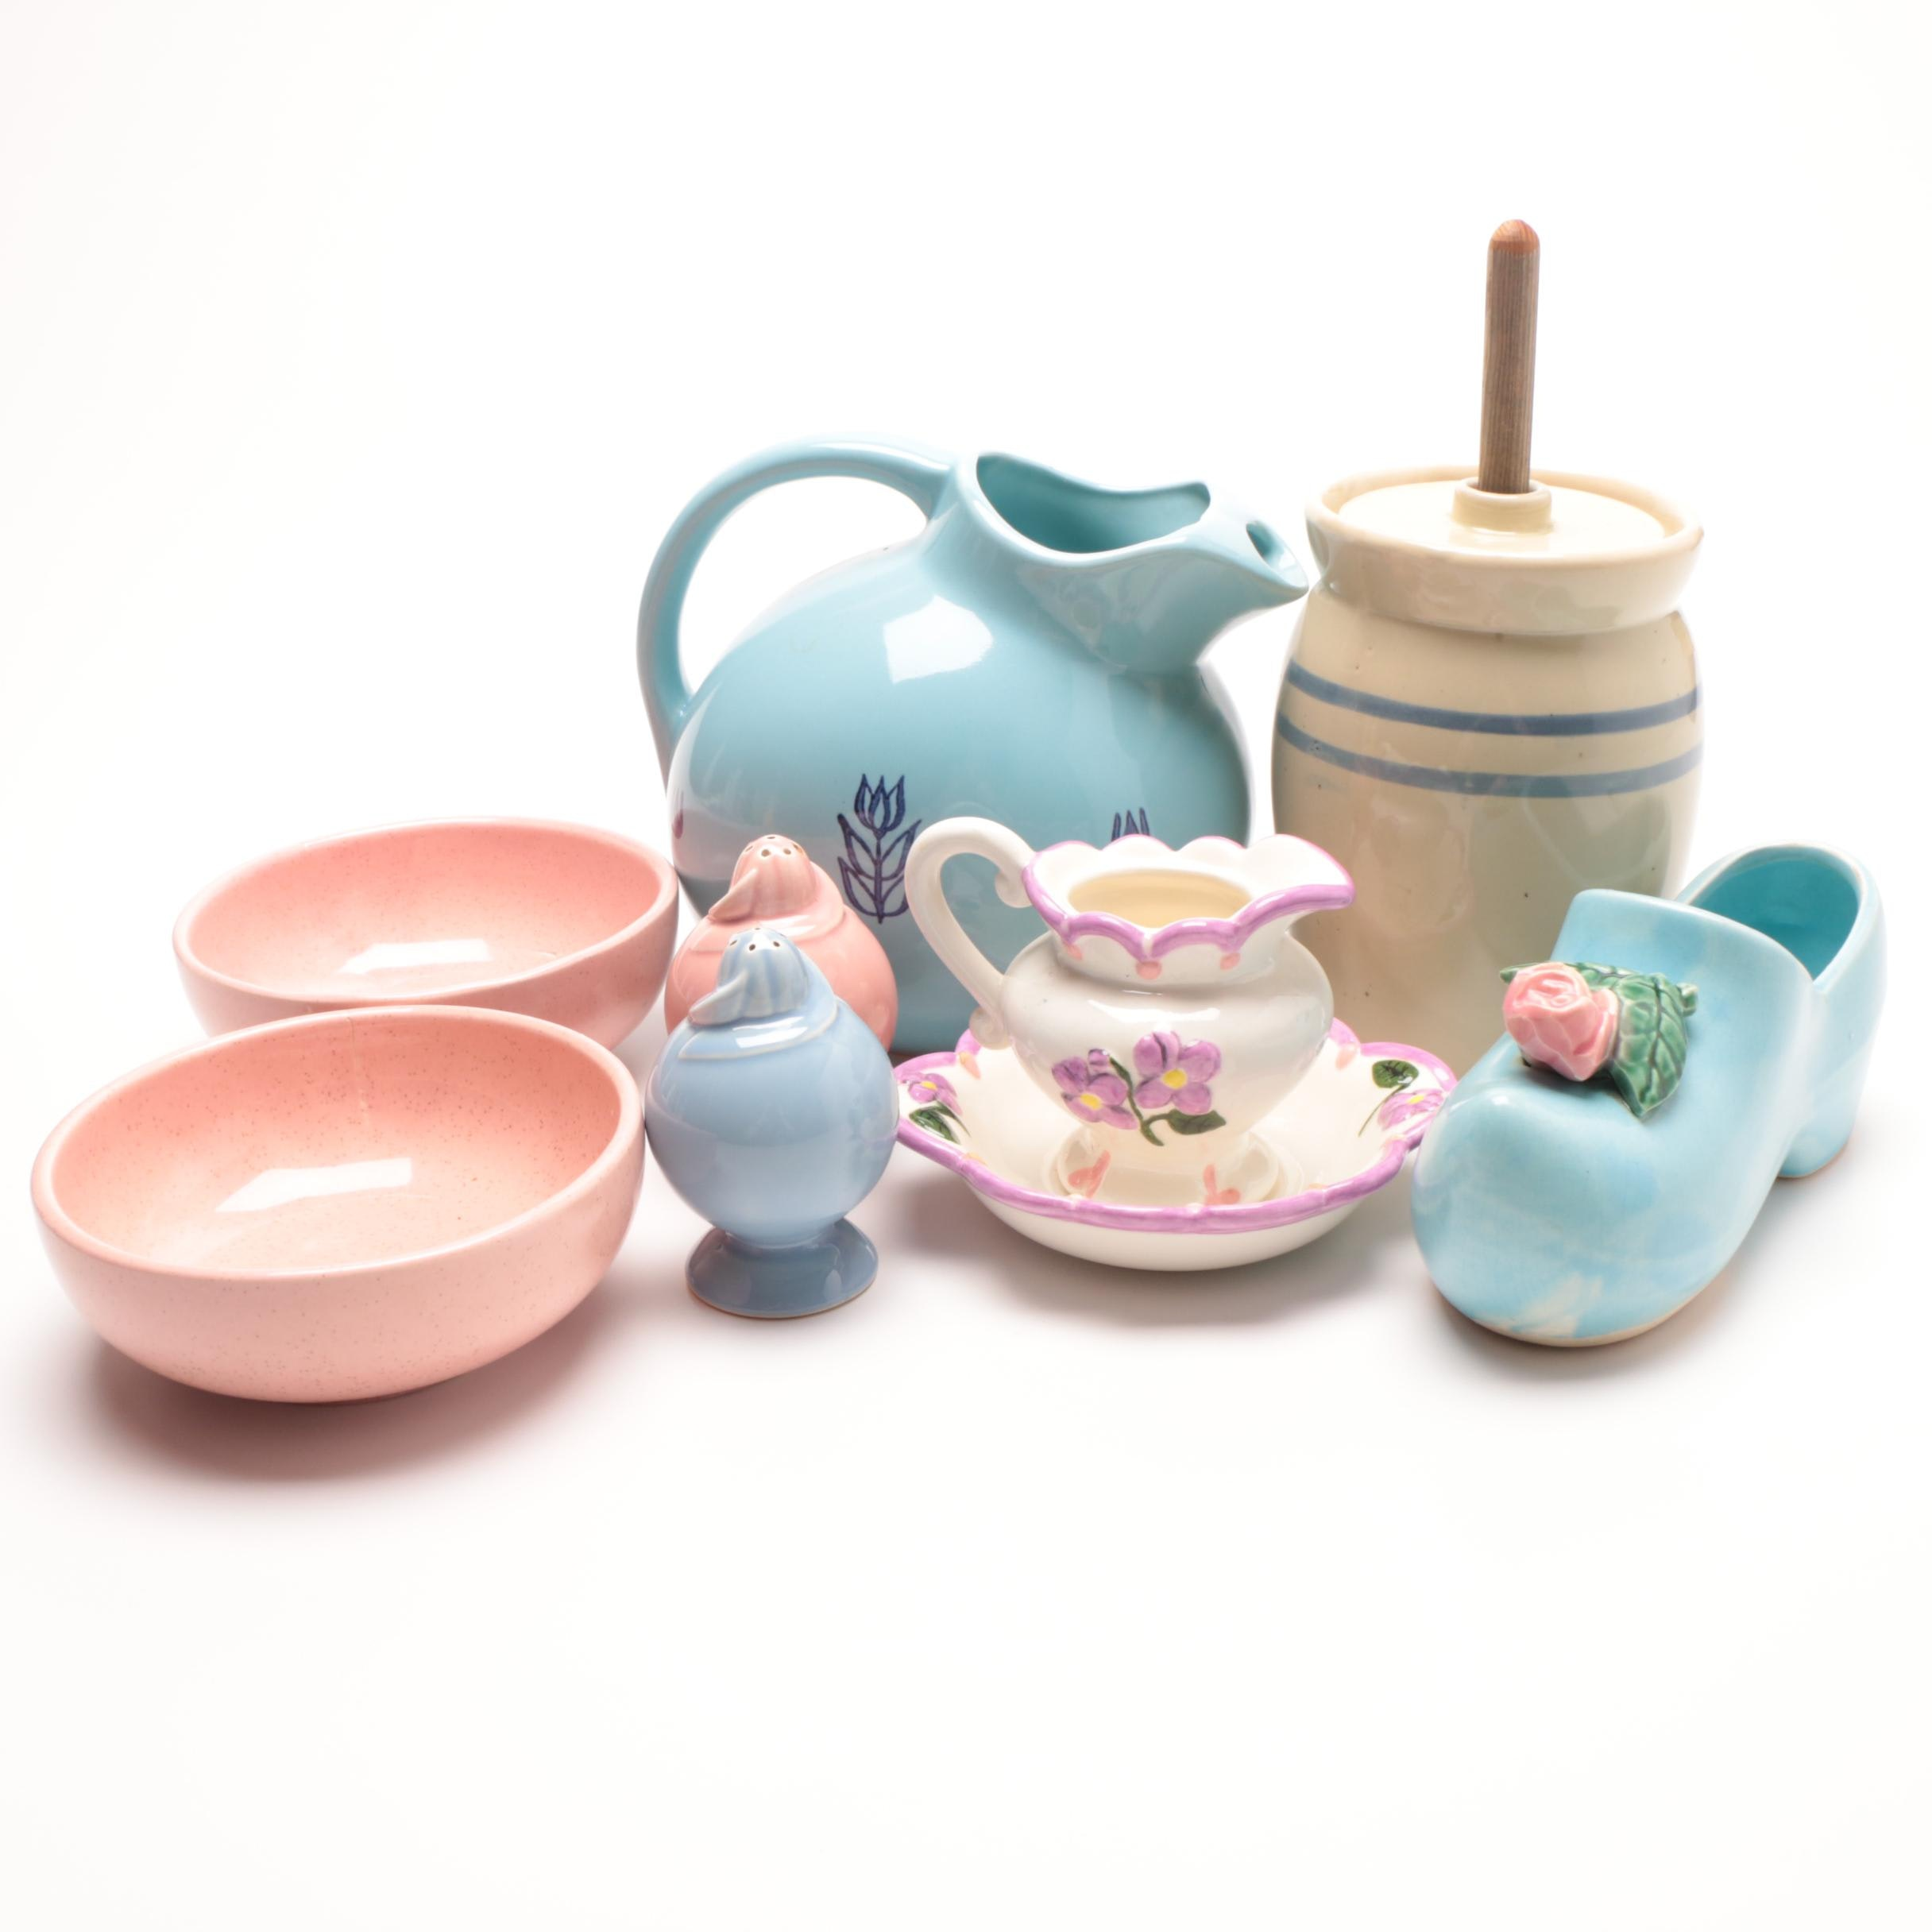 McCoy and Other Vintage Pottery